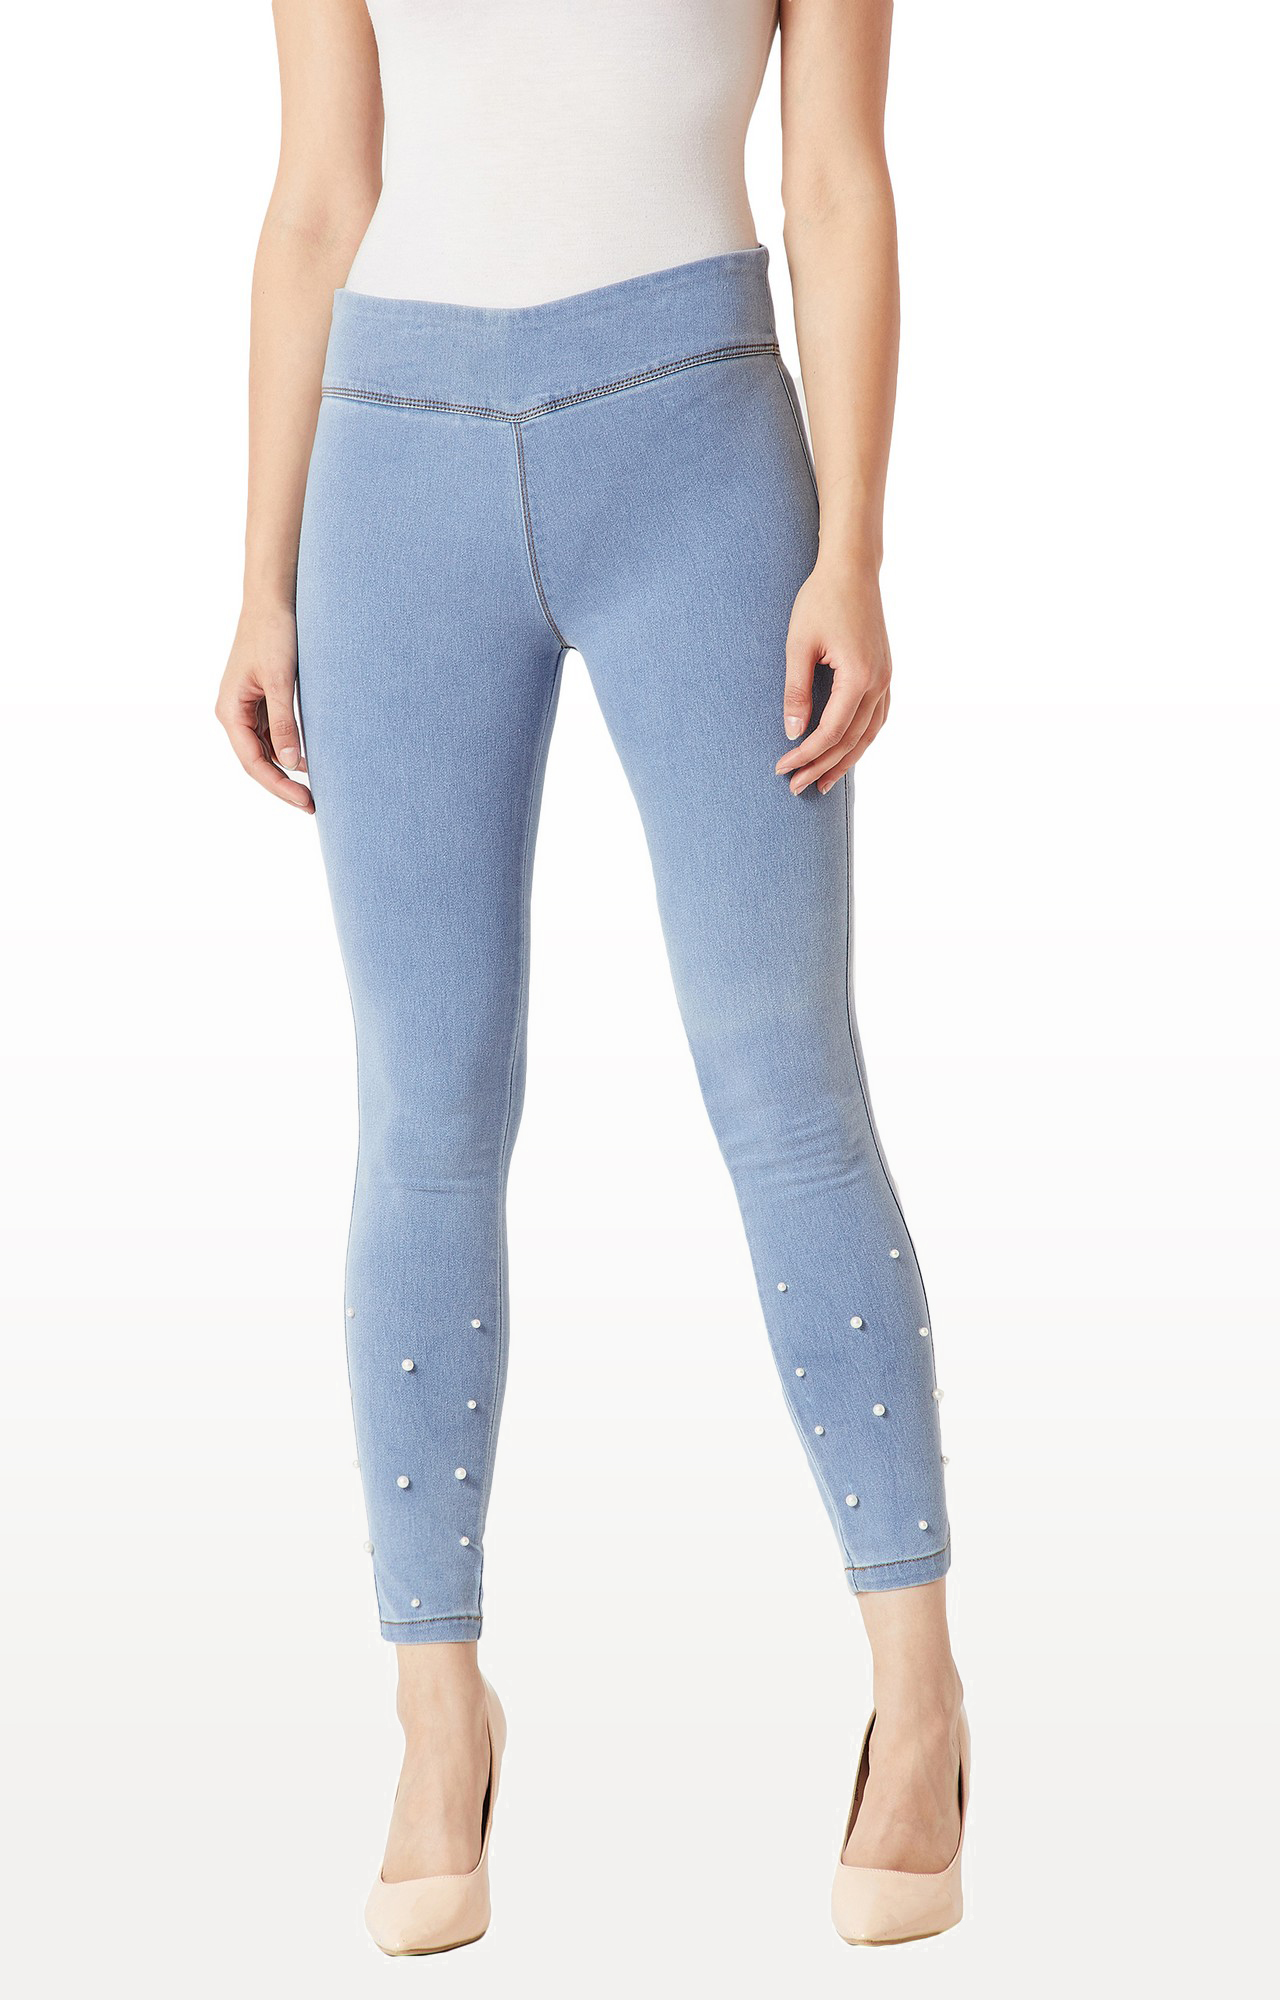 MISS CHASE | Light Blue Solid High Rise Clean Look Embellished Stretchable Denim Jeggings